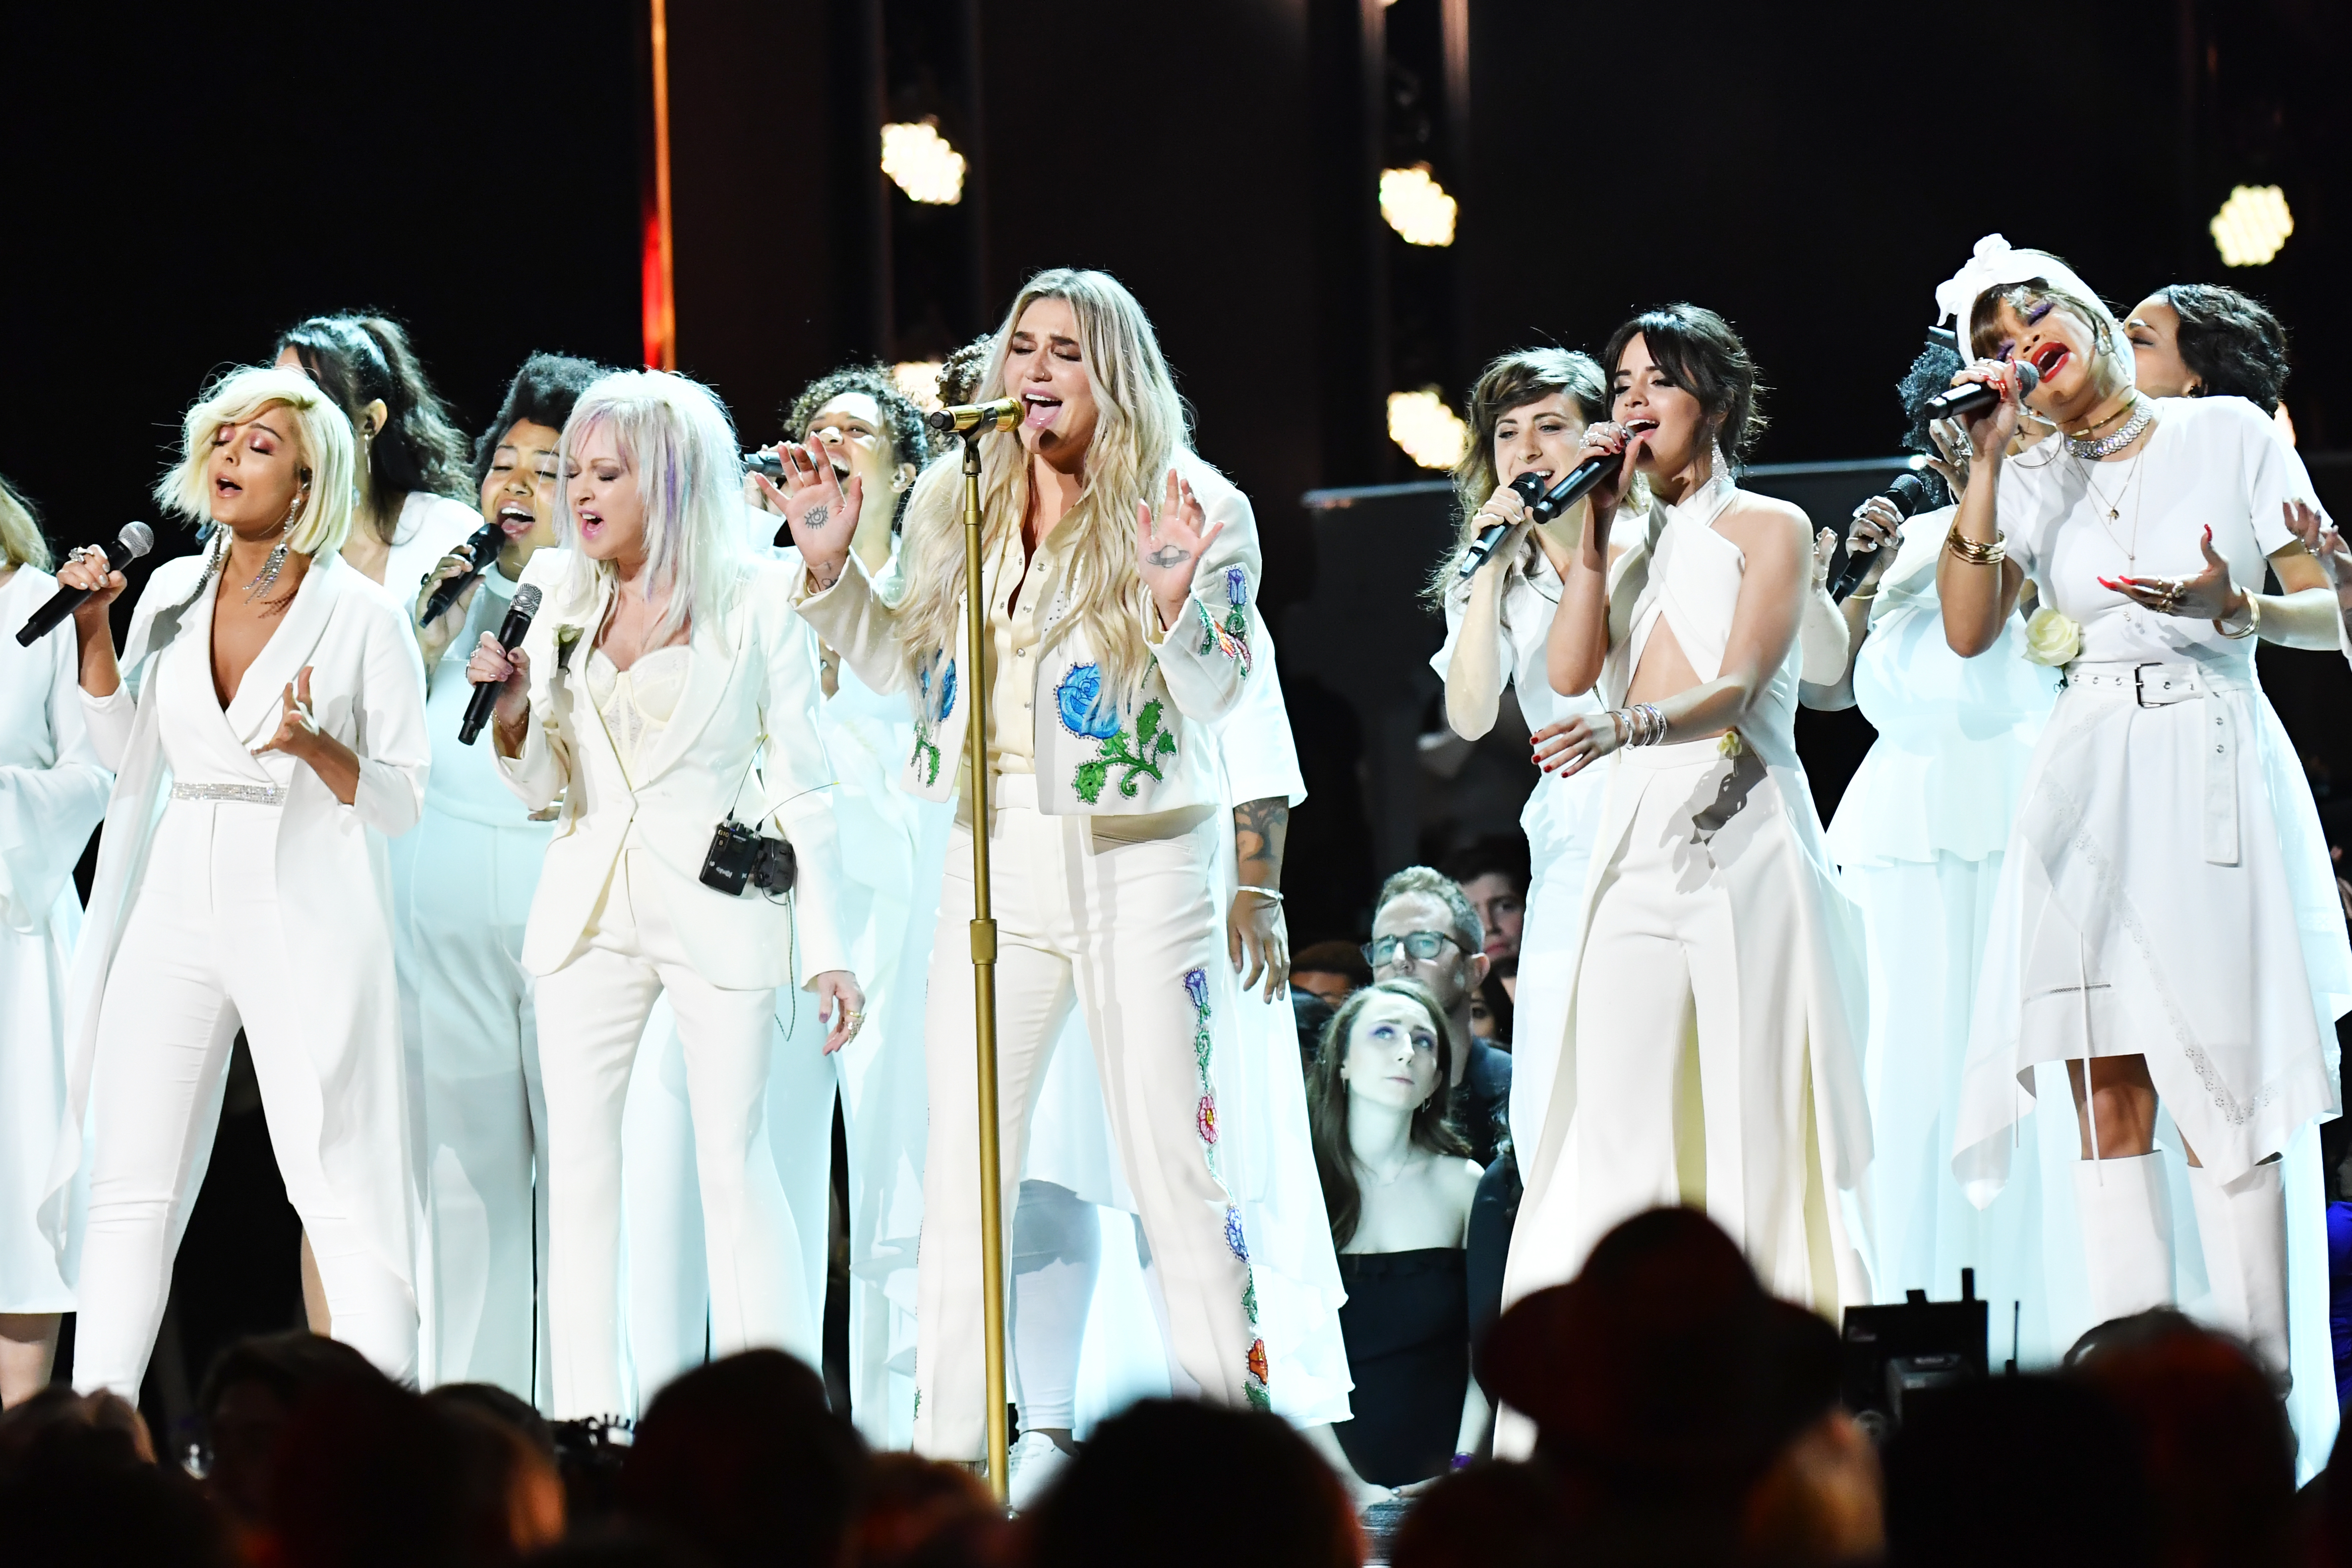 Kesha performs at the 2018 Grammys.